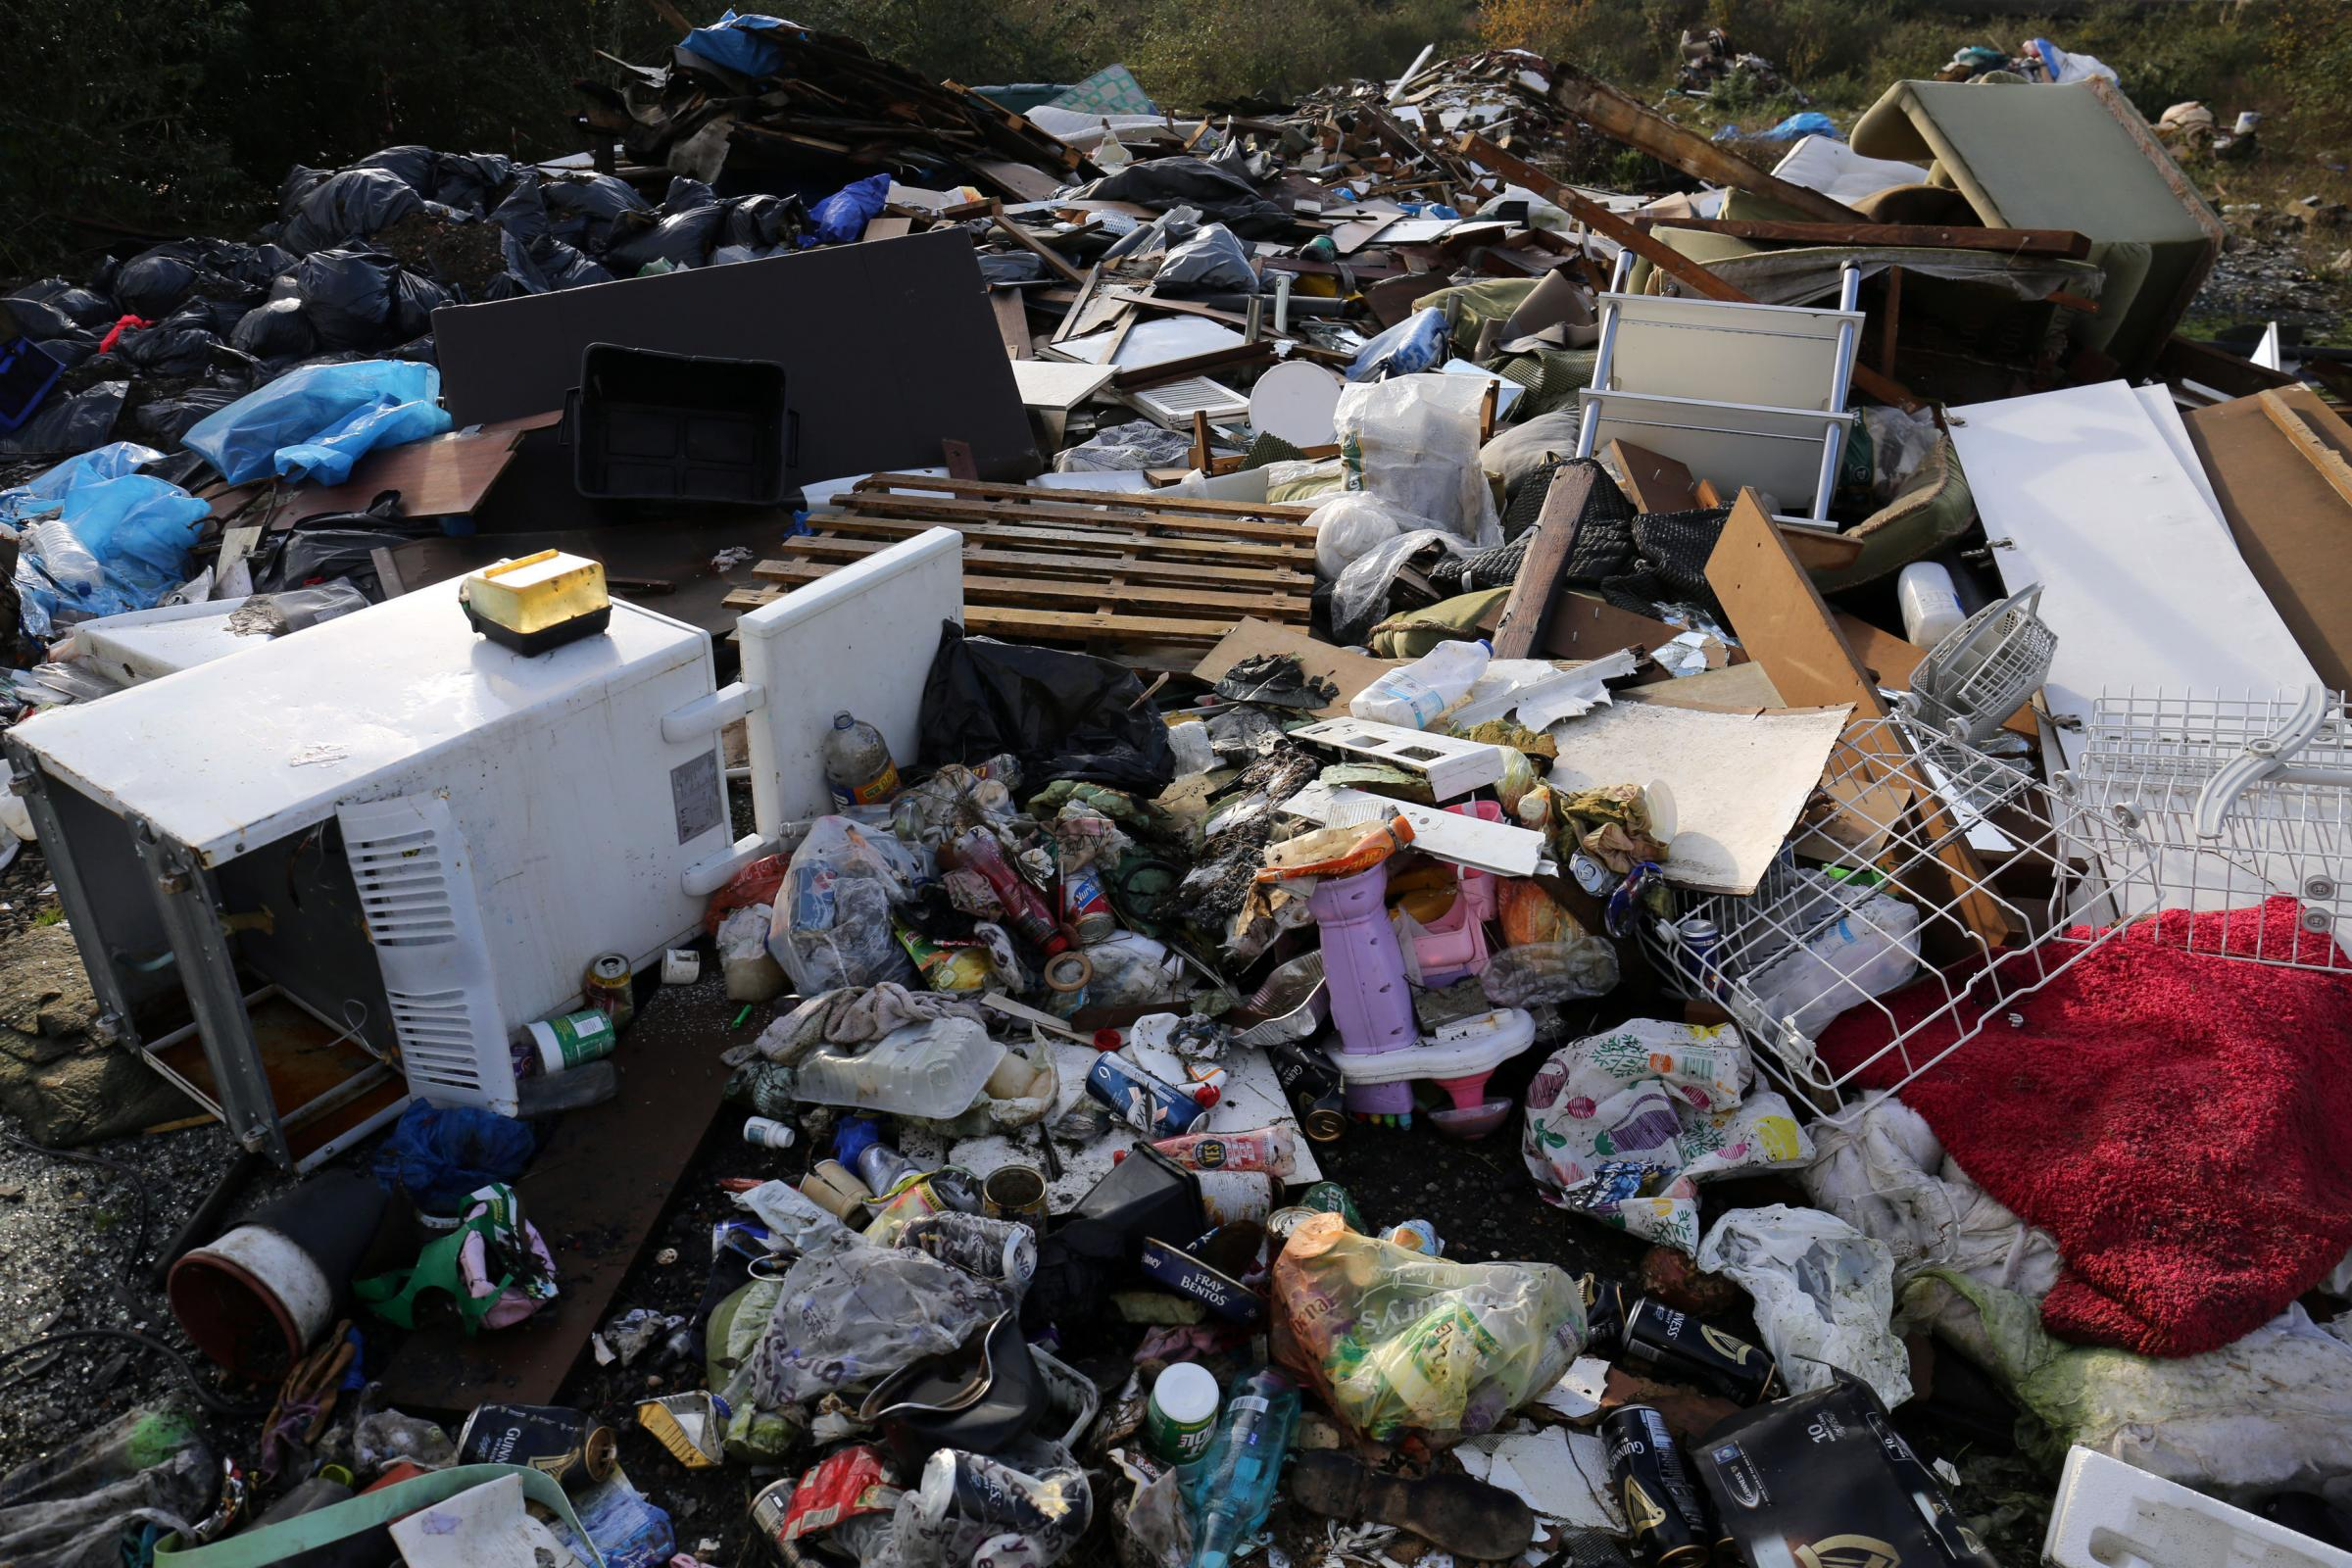 INCREASING: Fly-tipping is costing local authorities millions to clear away Picture: CHRIS RADBURN/PA WIRE